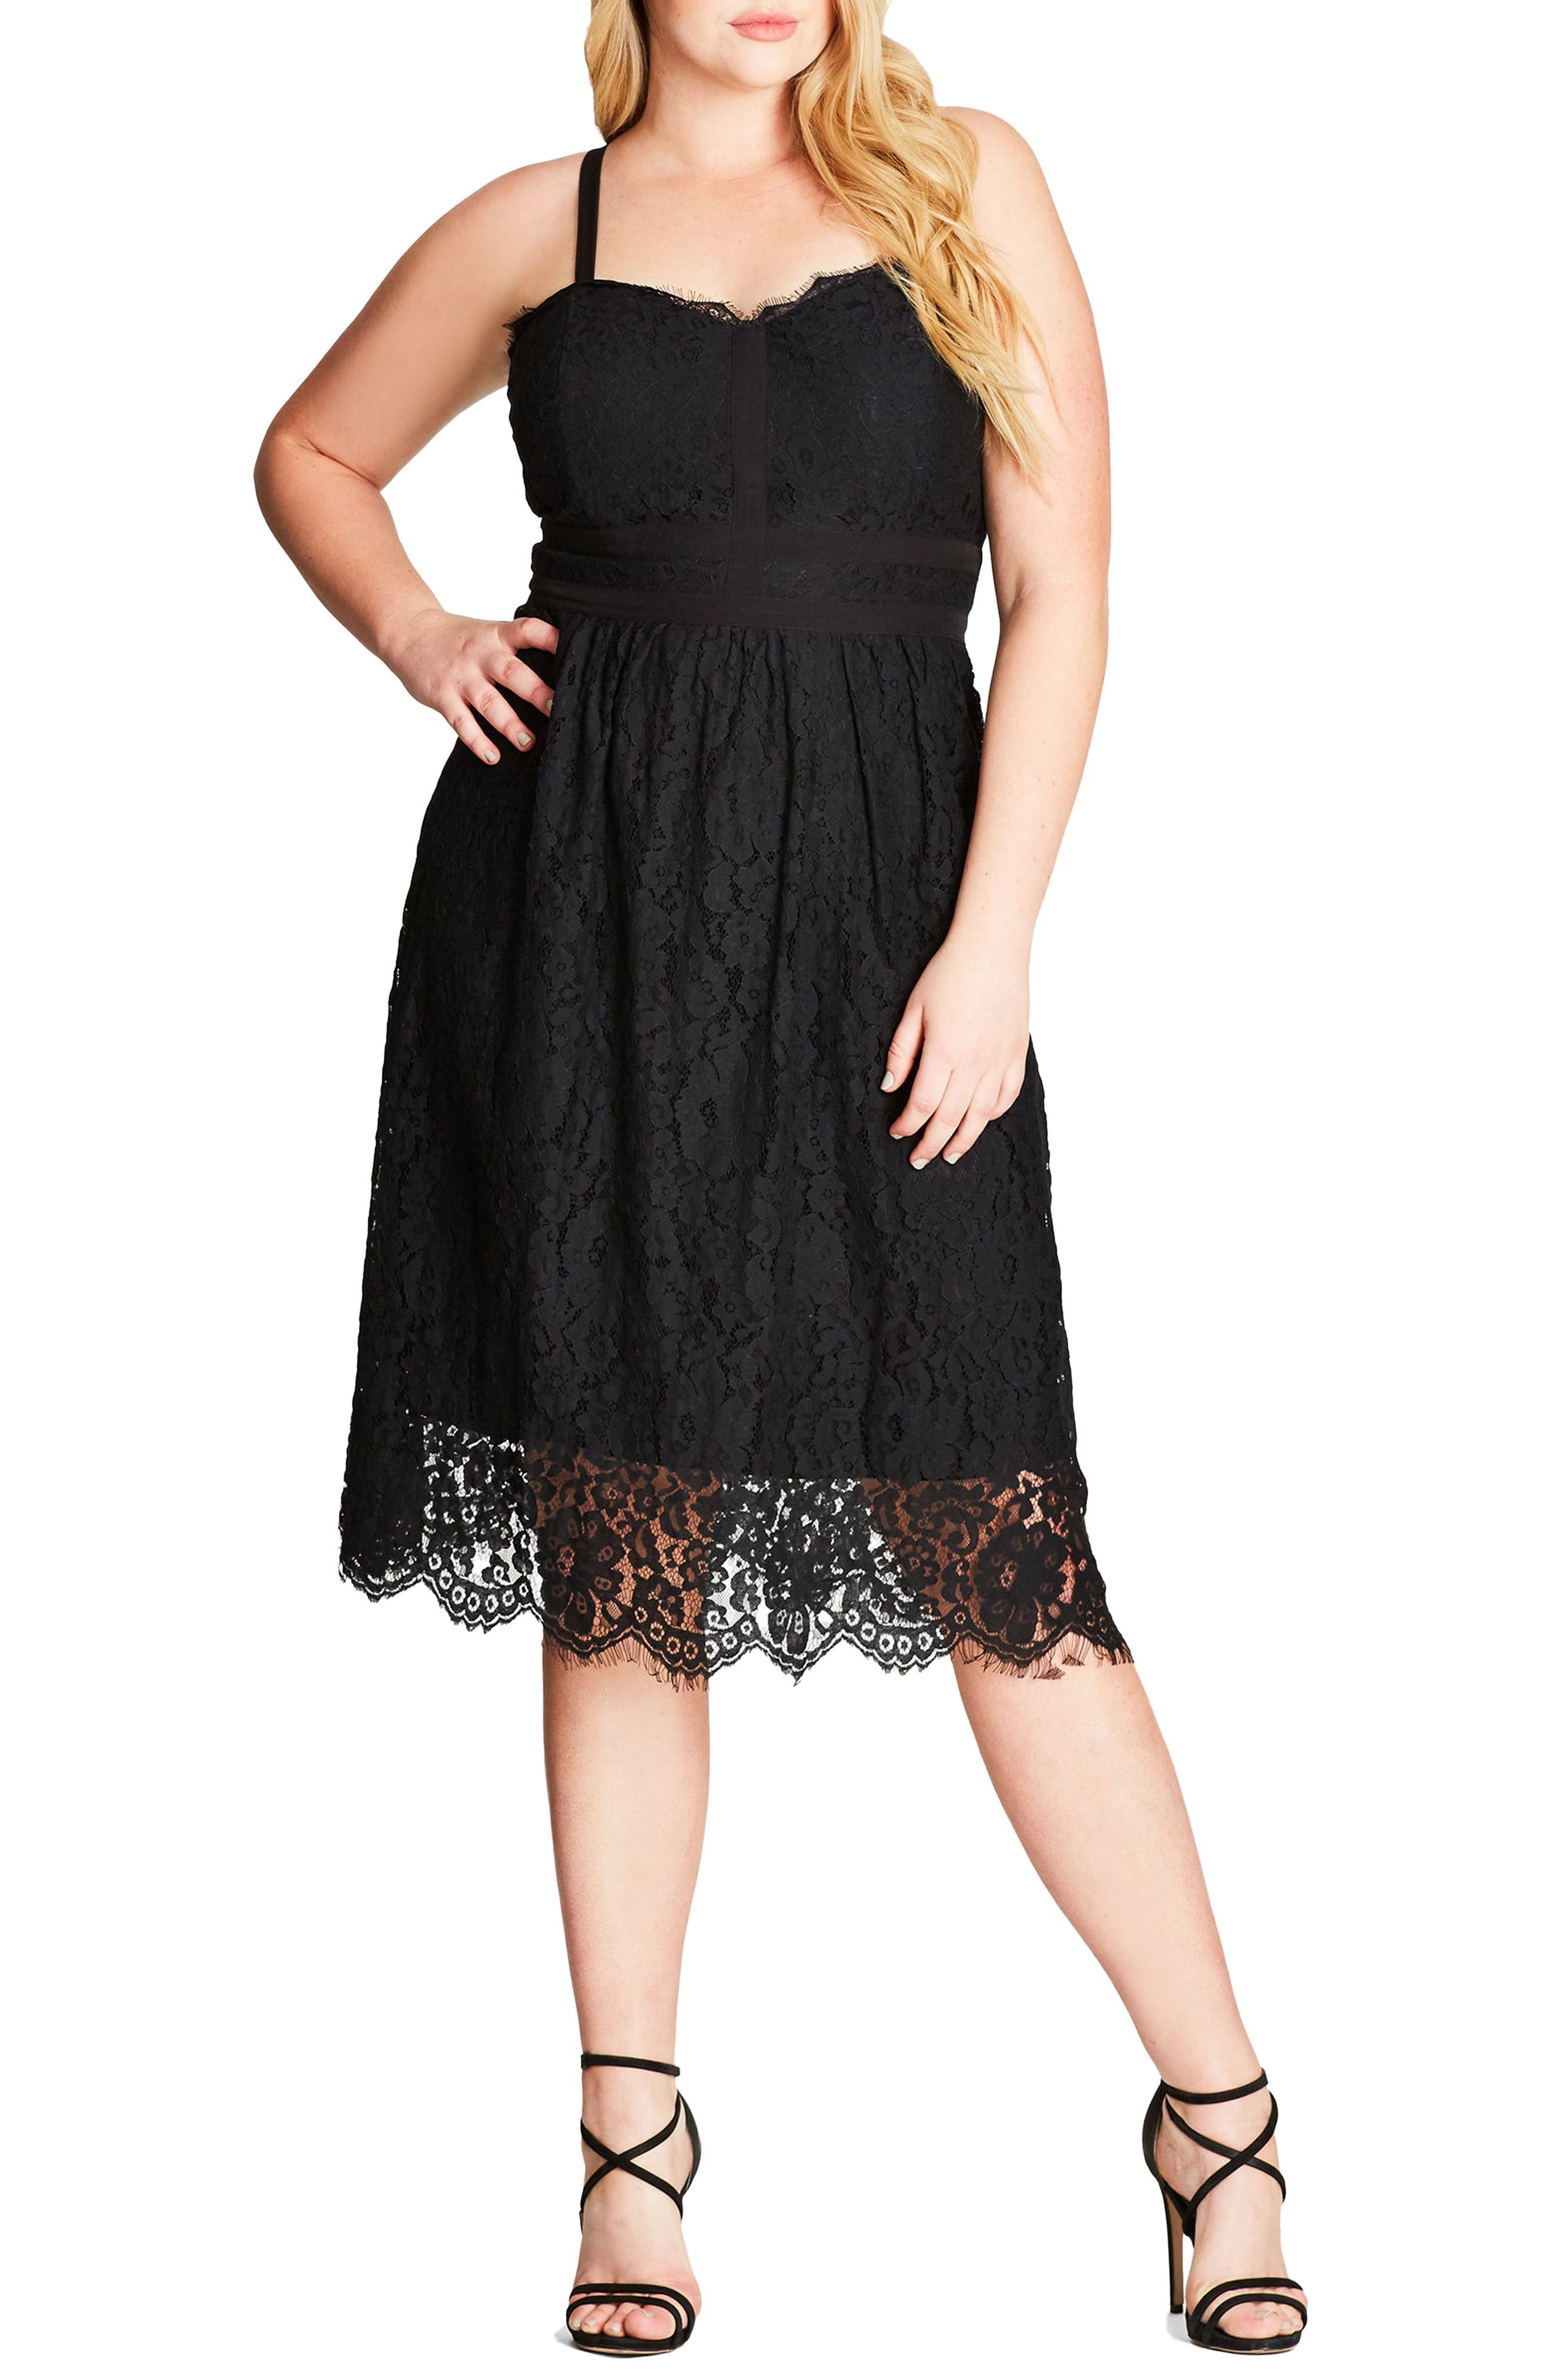 Alternate Image 1 Selected - City Chic Lush Lace Dress (Plus Size)